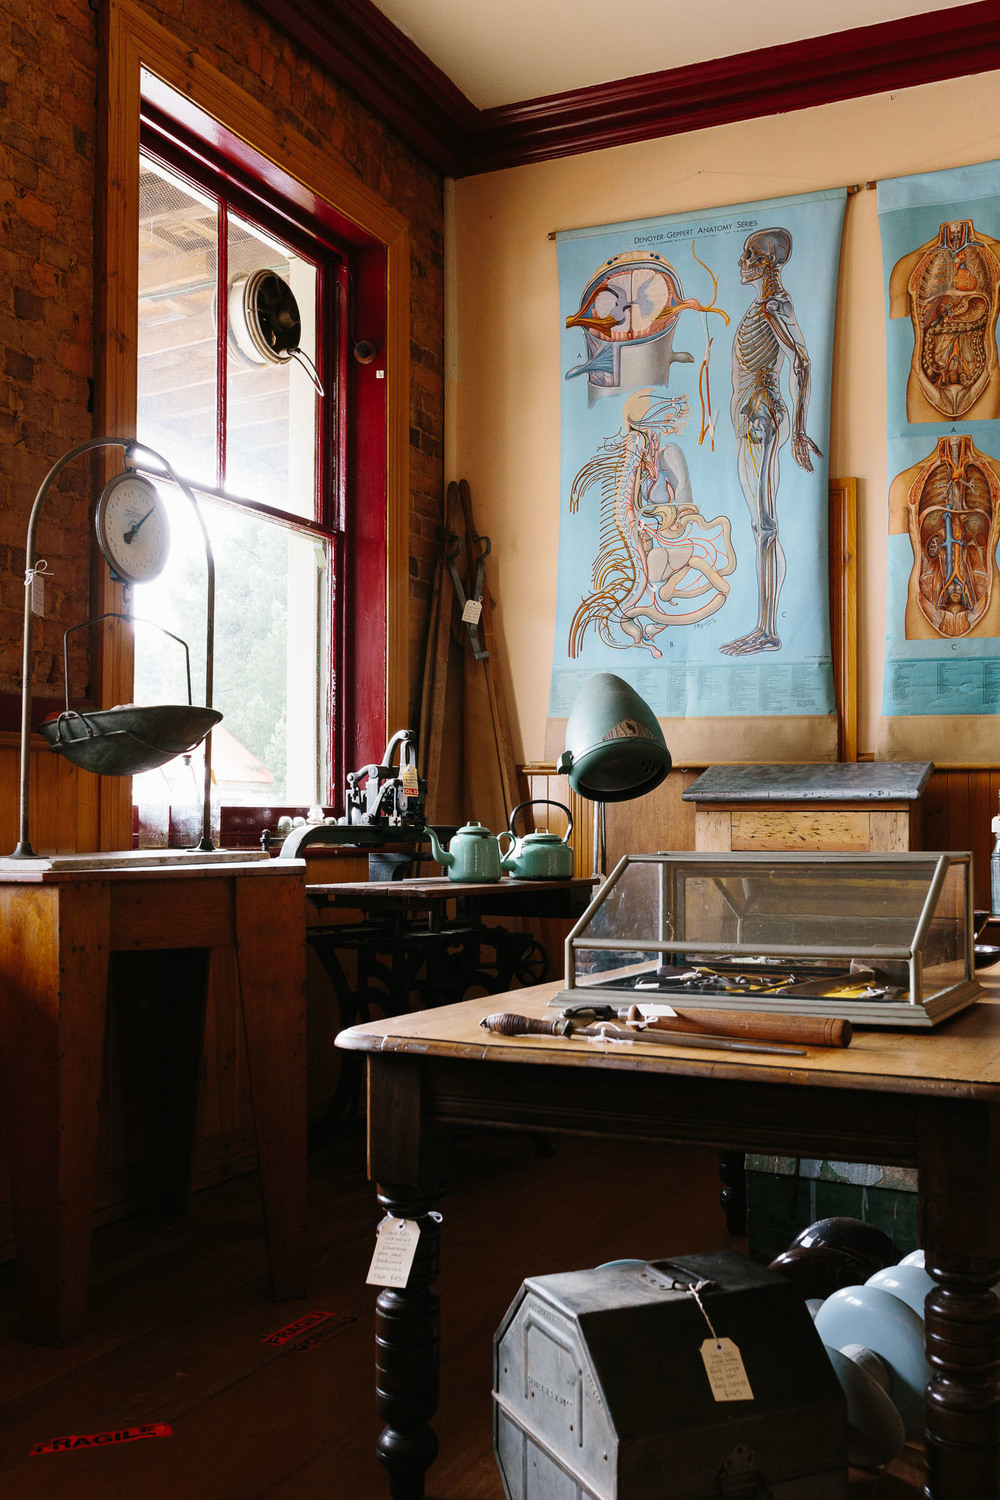 Melbourne lifestyle photographer Marnie Hawson's An Honest Trade project - antique dealer The Wooden Duck in Trentham